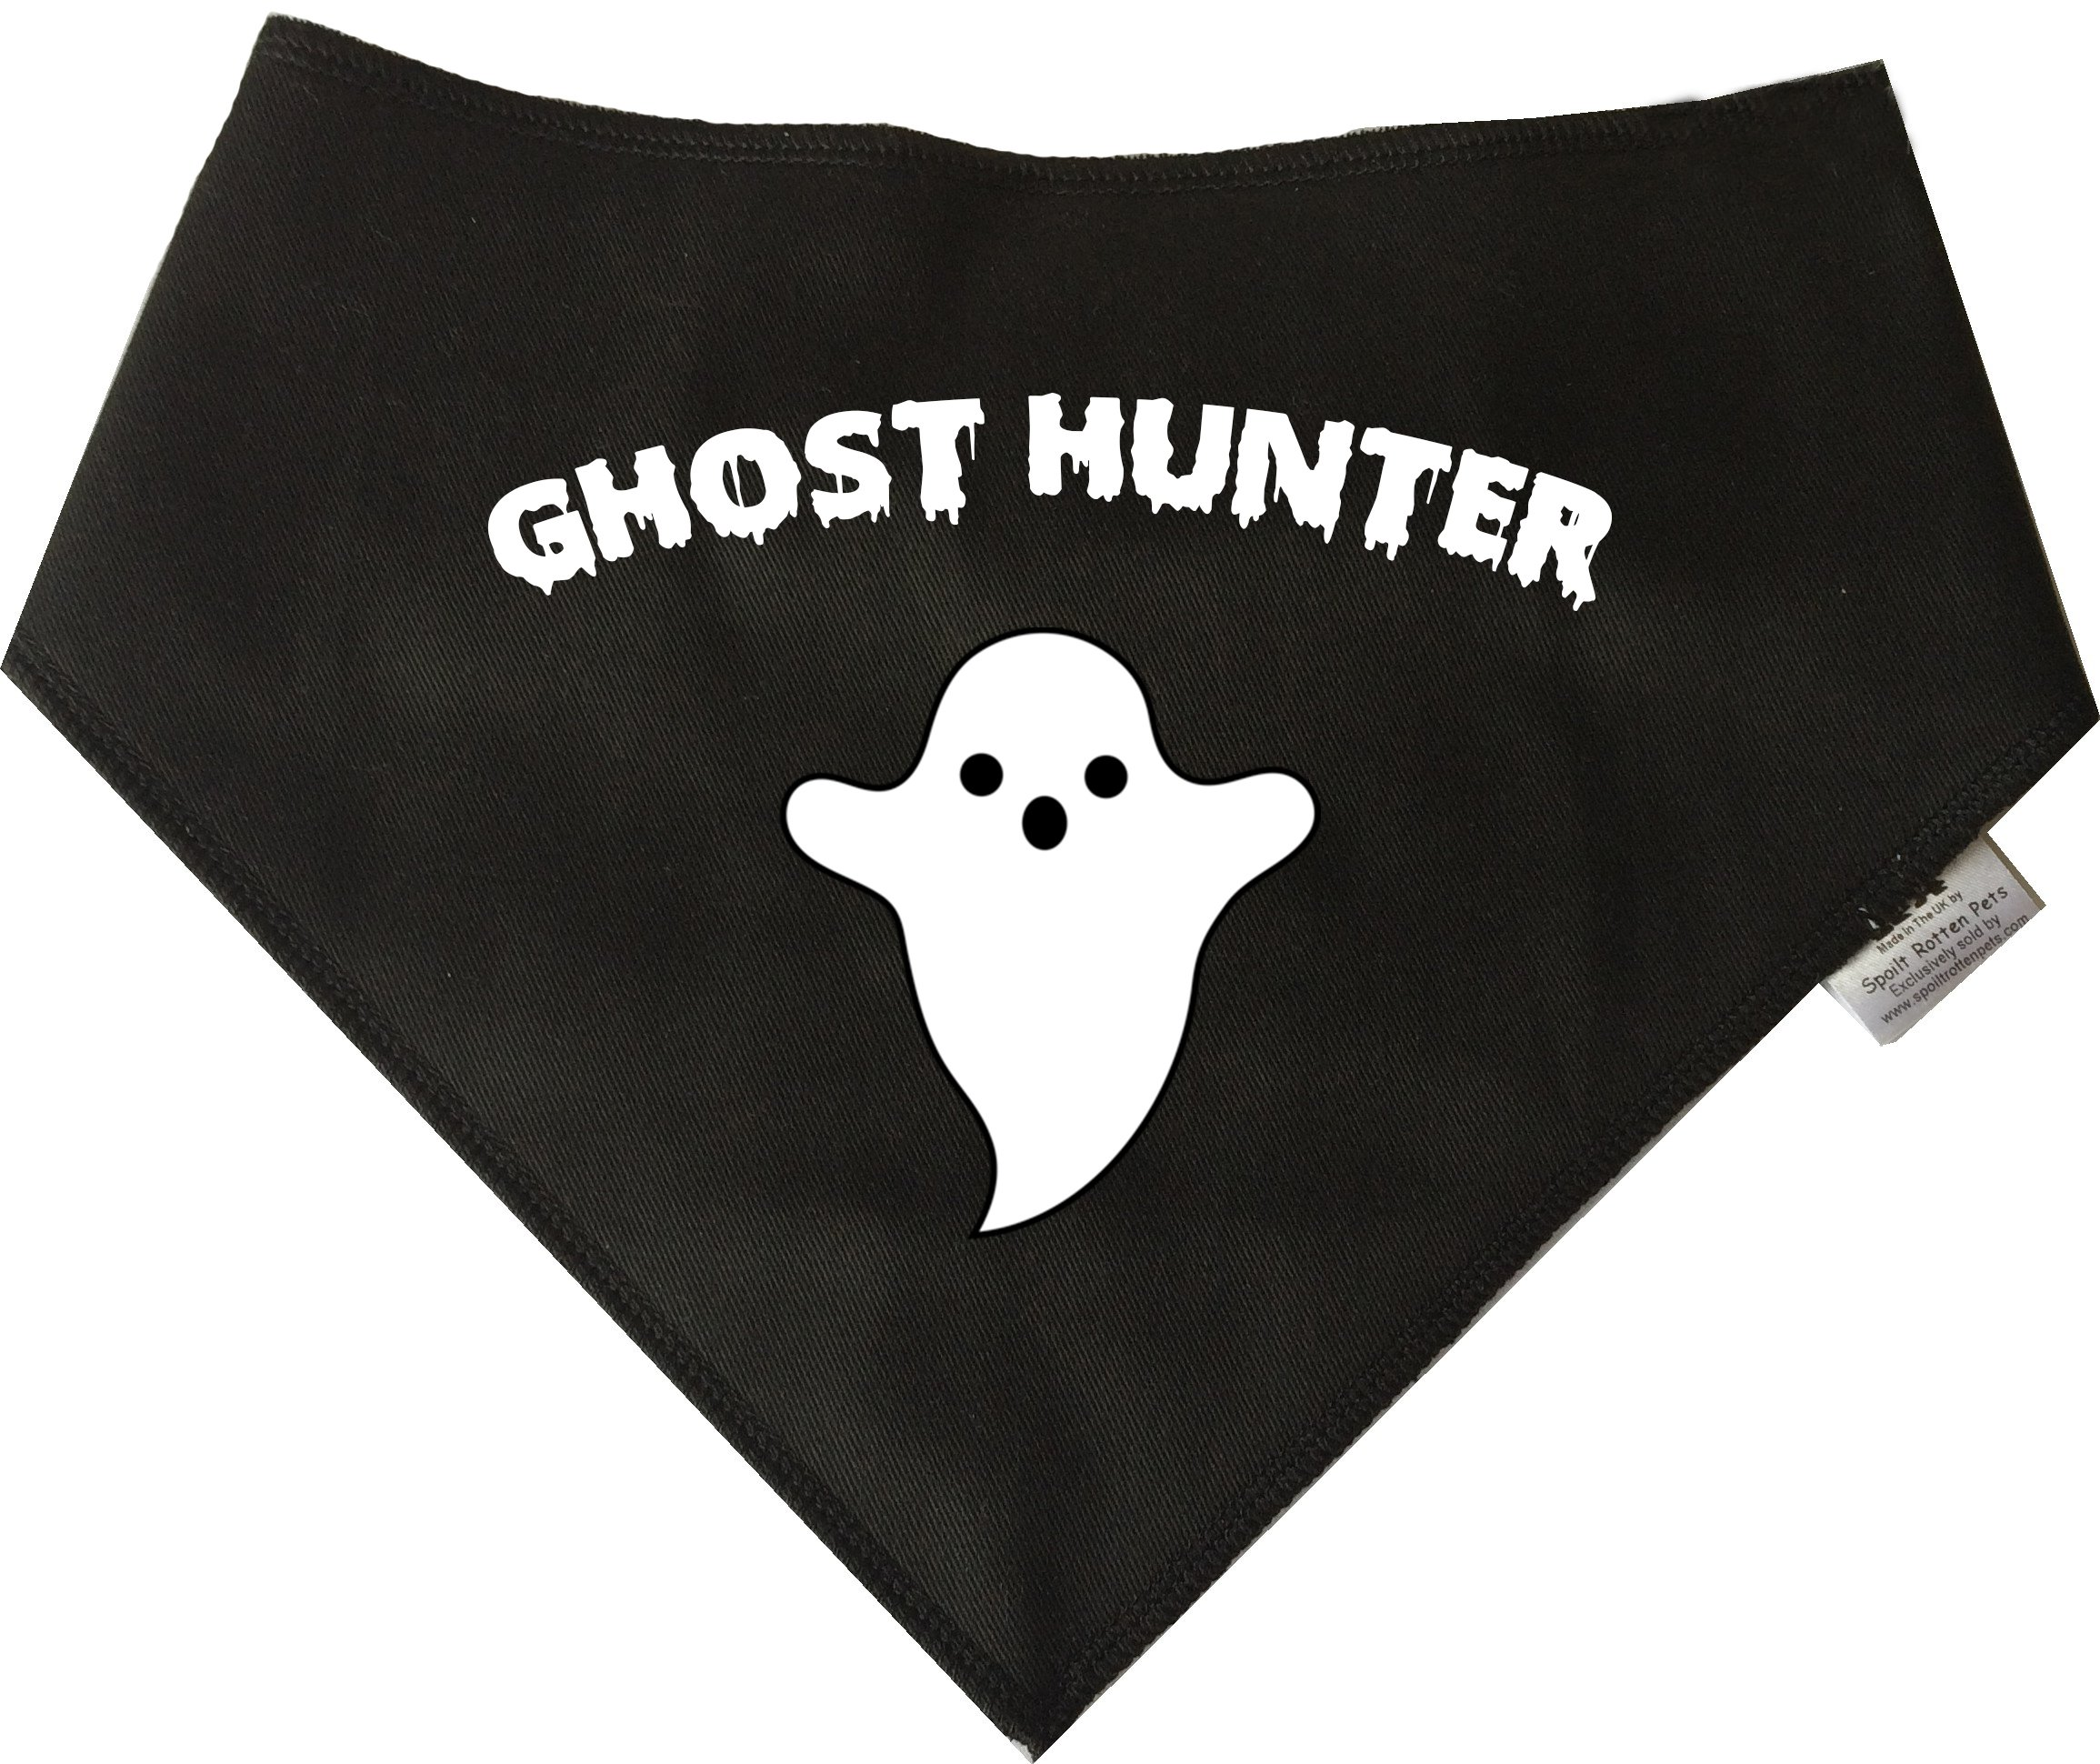 Spoilt Rotten Pets (S4) Black GHOST HUNTER Dog Bandana Adjustable Neck to Fit Large to Extra/Large Dogs – Neck Size 23″ – 28″ Generally Fits Chow Chow, German Shepherd, St Bernard, Dogue de Bordeaux and Similar Sized Dogs.